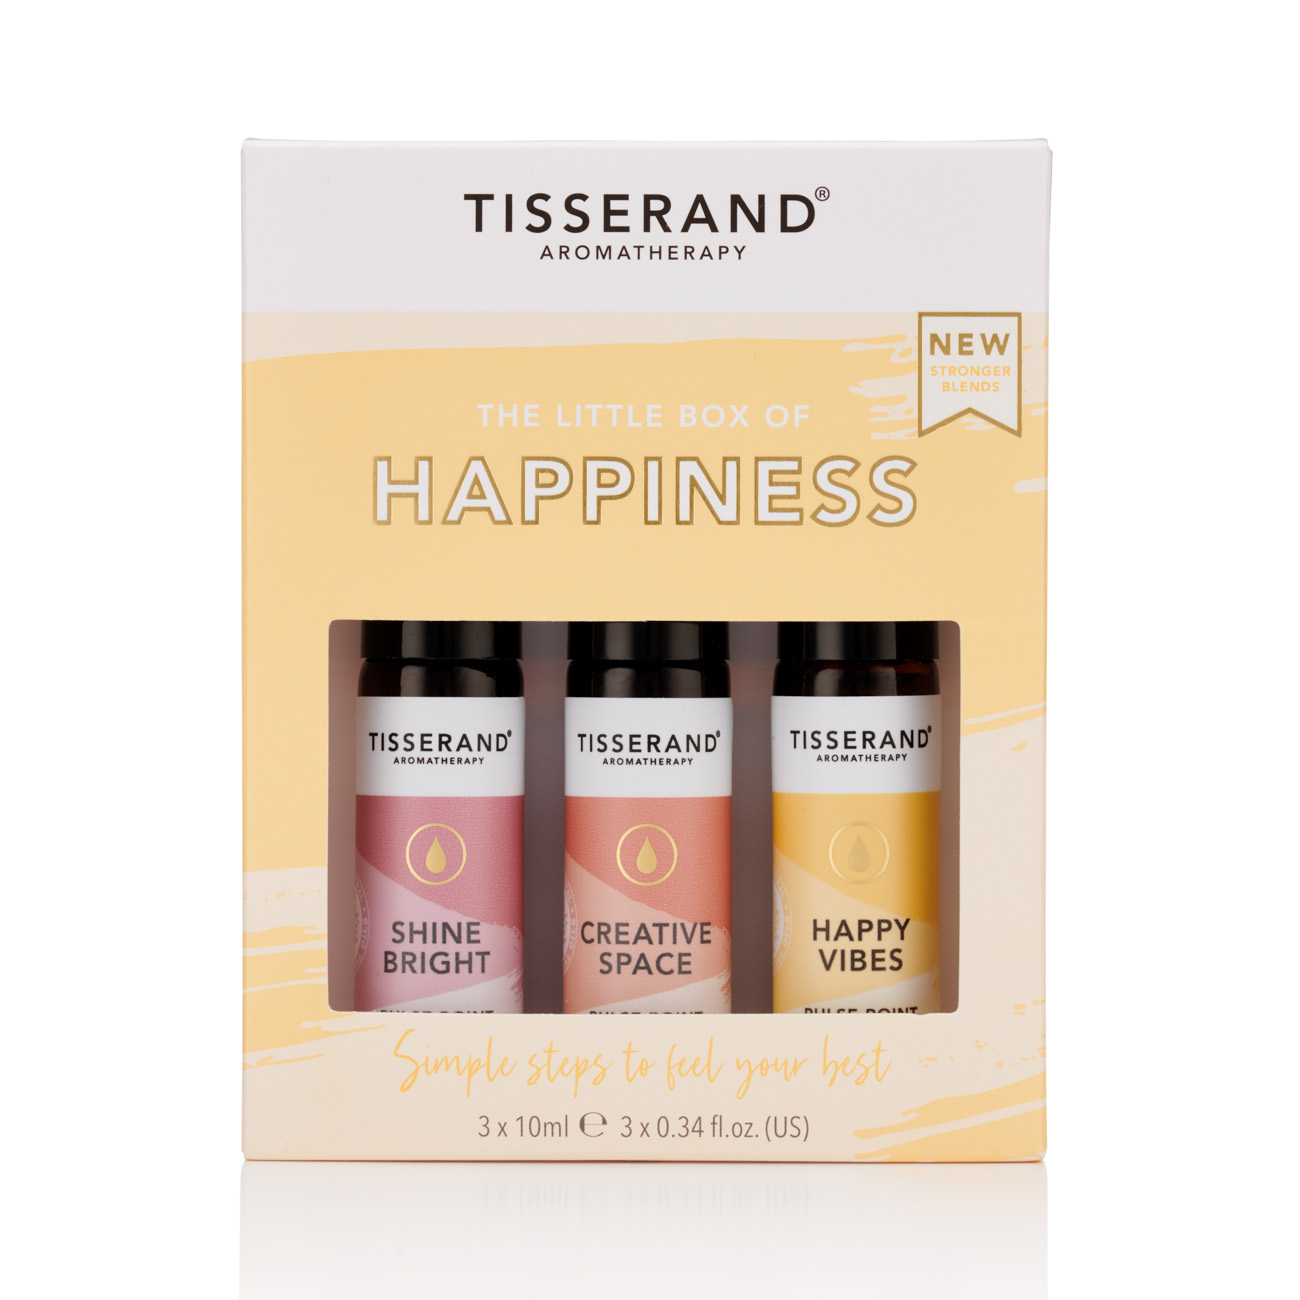 The Little Box of Happiness 3 x 10ml